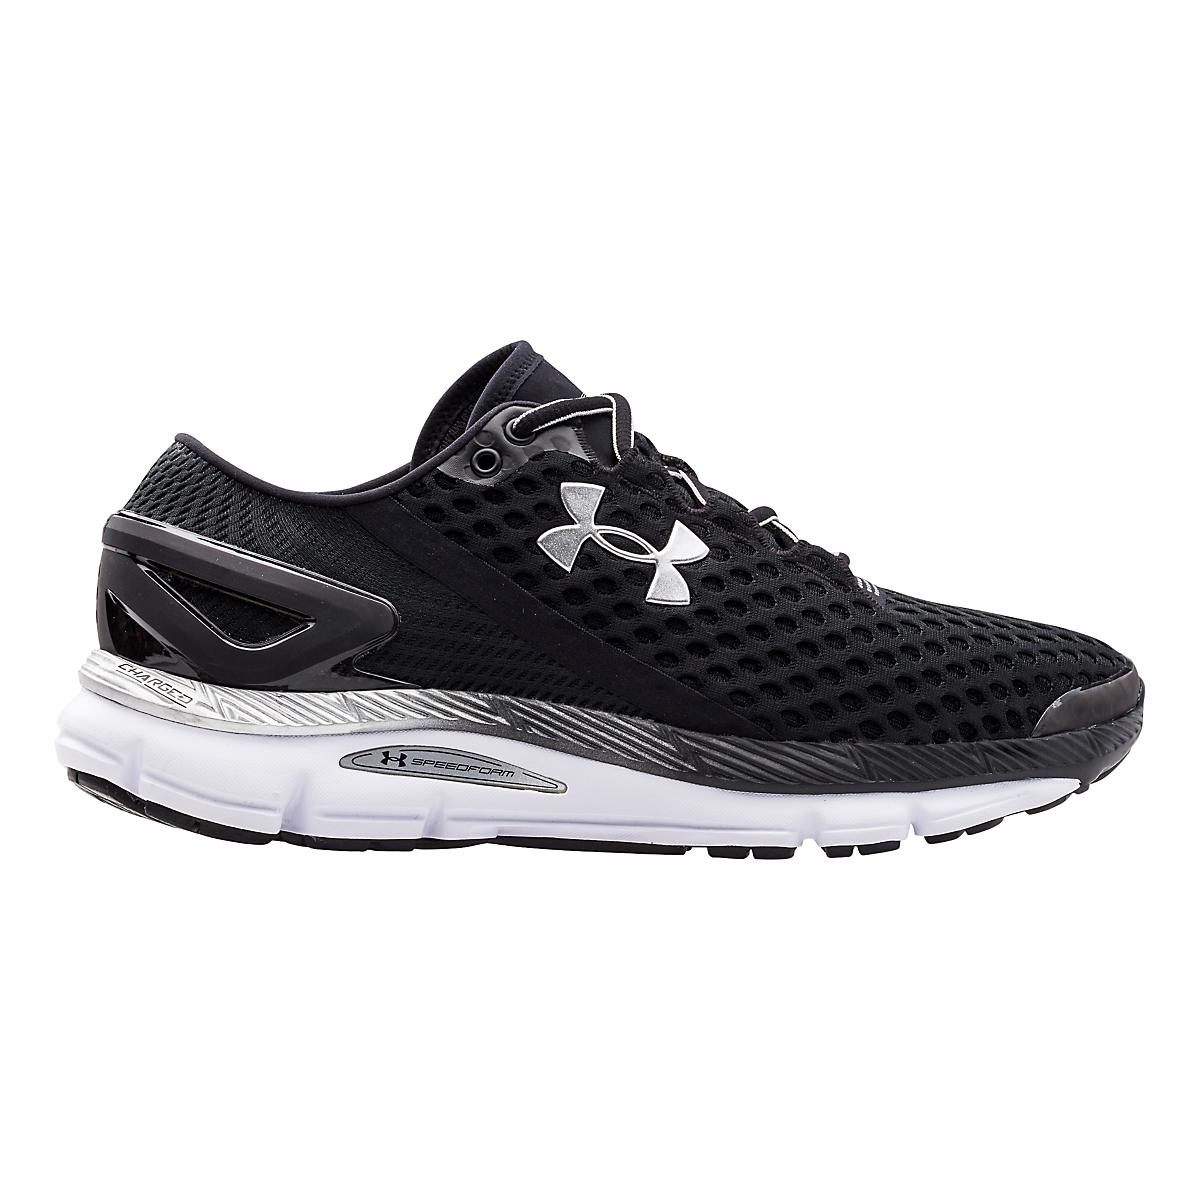 hot sale online b232f 22111 Men's Speedform Gemini 2